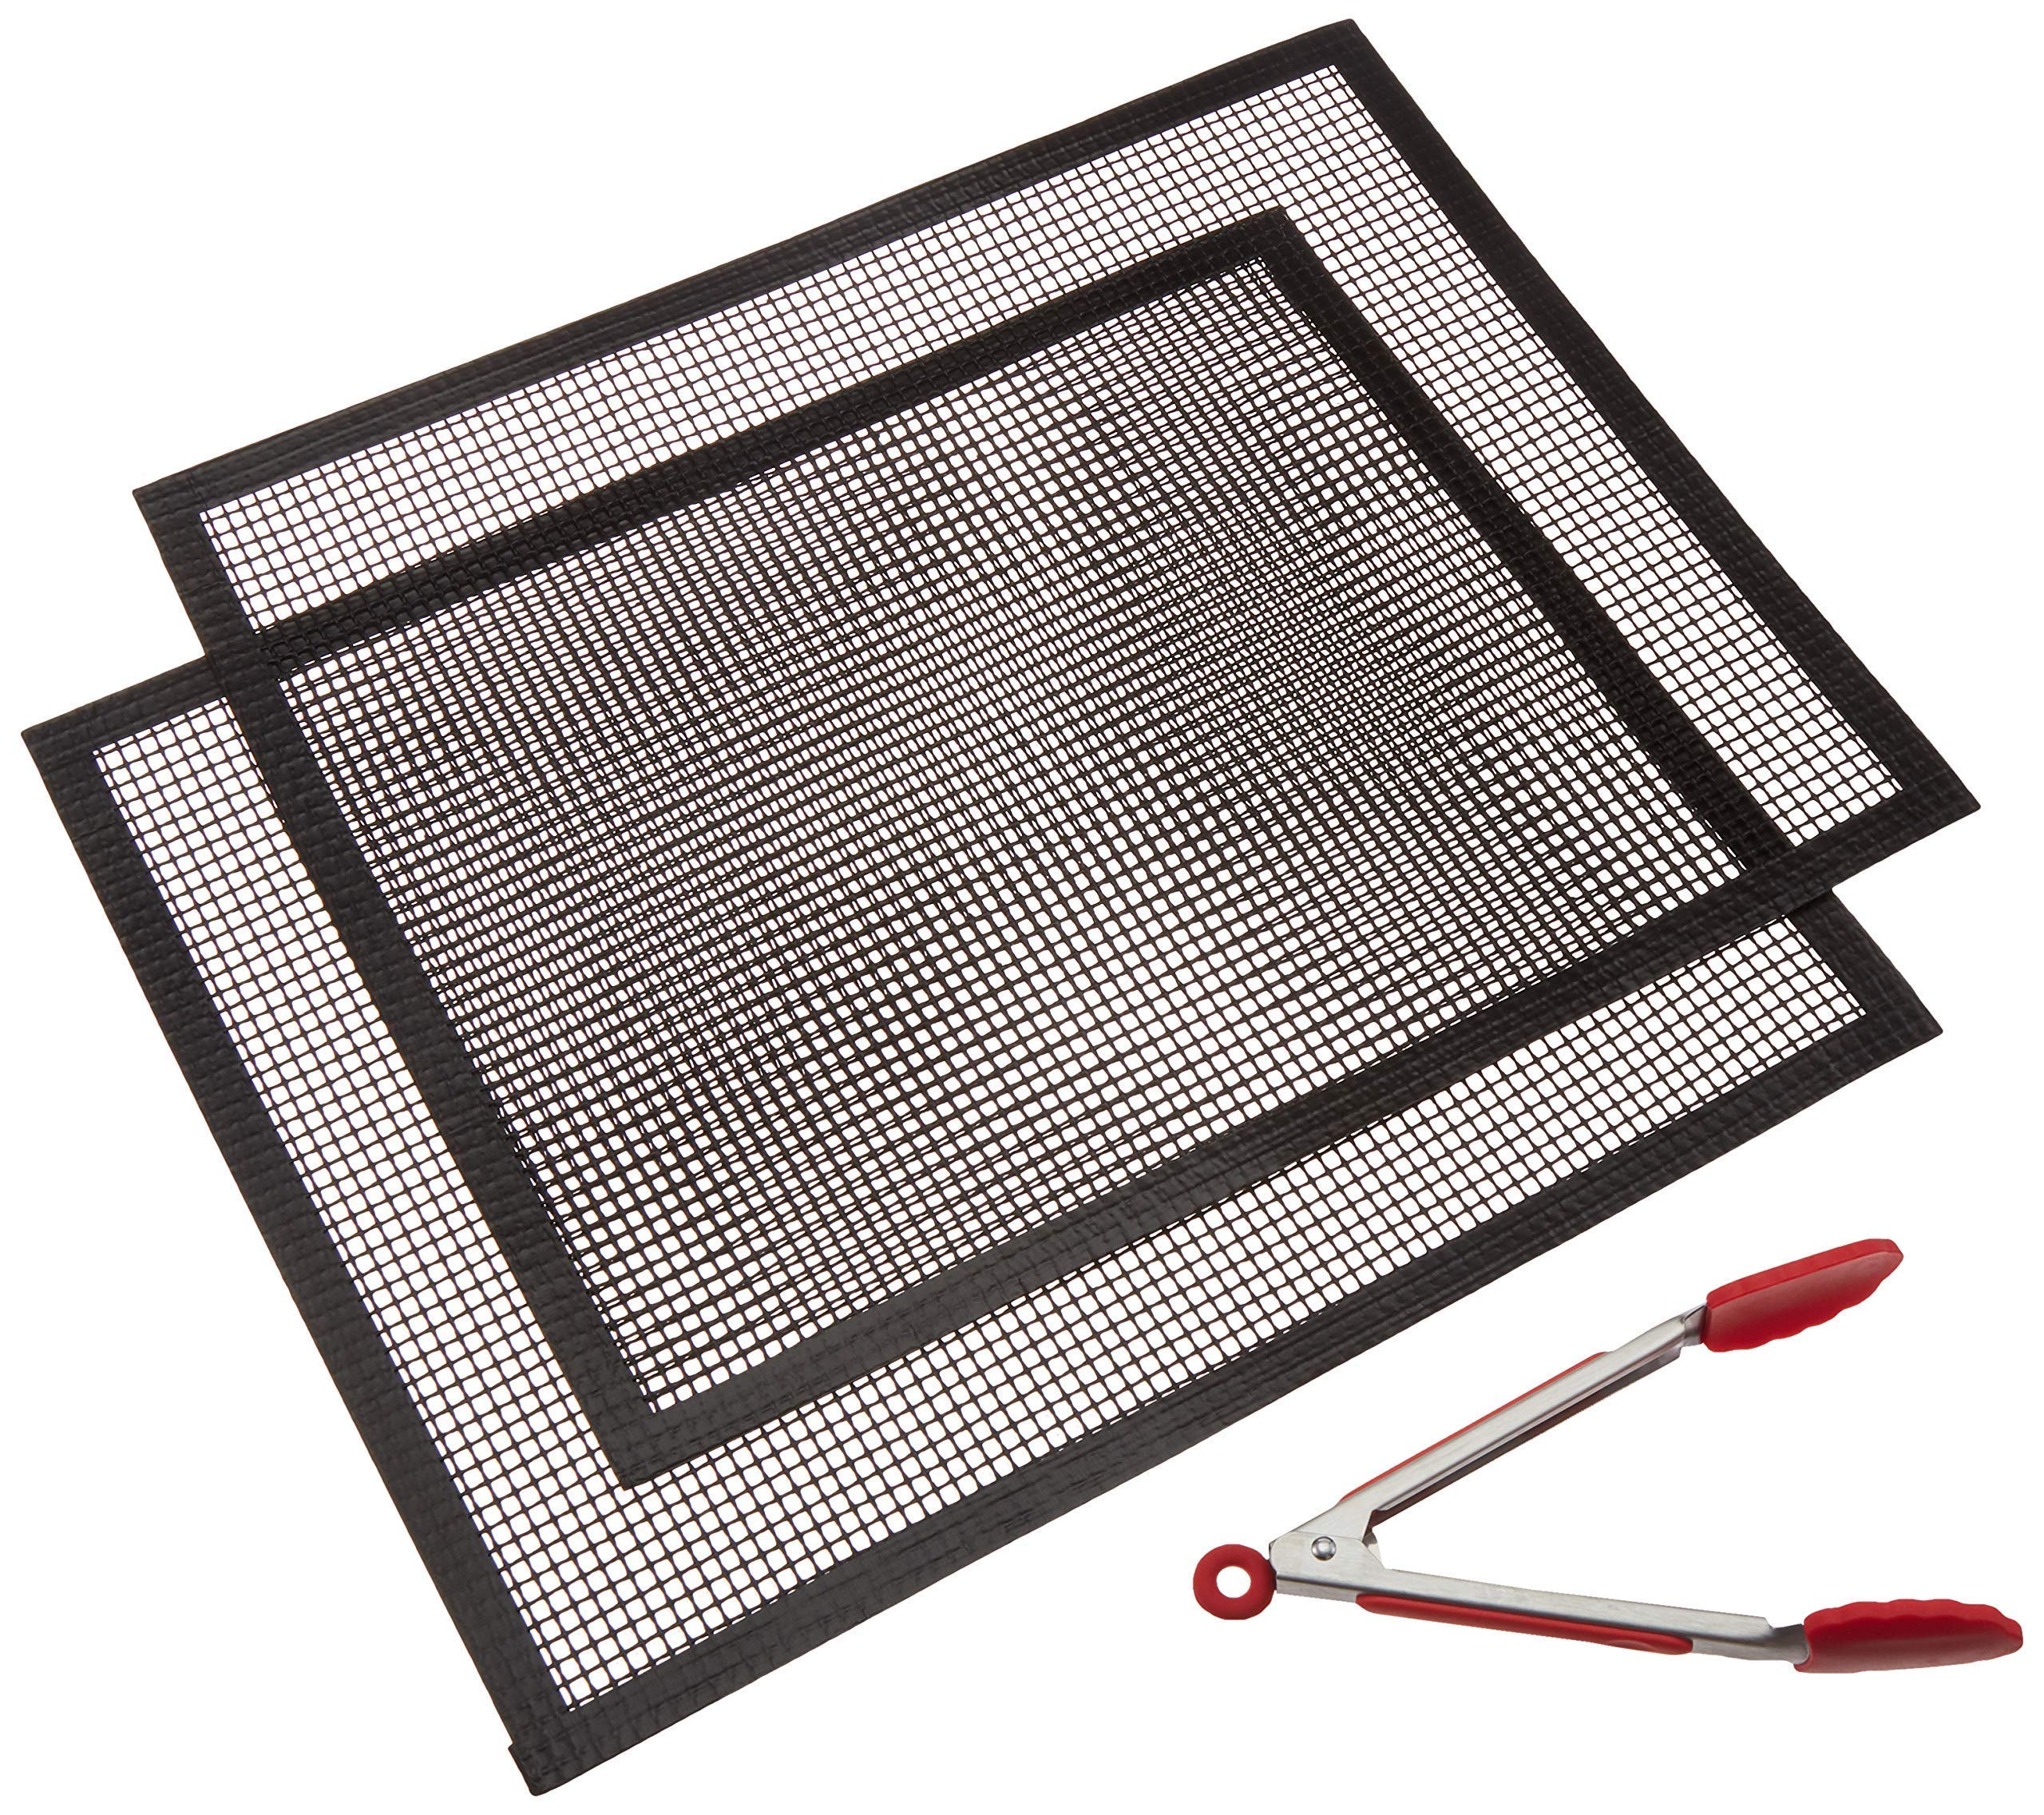 Morton Applied Products Exclusive Mesh BBQ Grill Mat 2 Pack Plus Free Serving Tong, Non Stick Barbecue Grill Mesh Liners, Grill Mat, BBQ Grill Mat, Grill Topper by Morton Applied Products